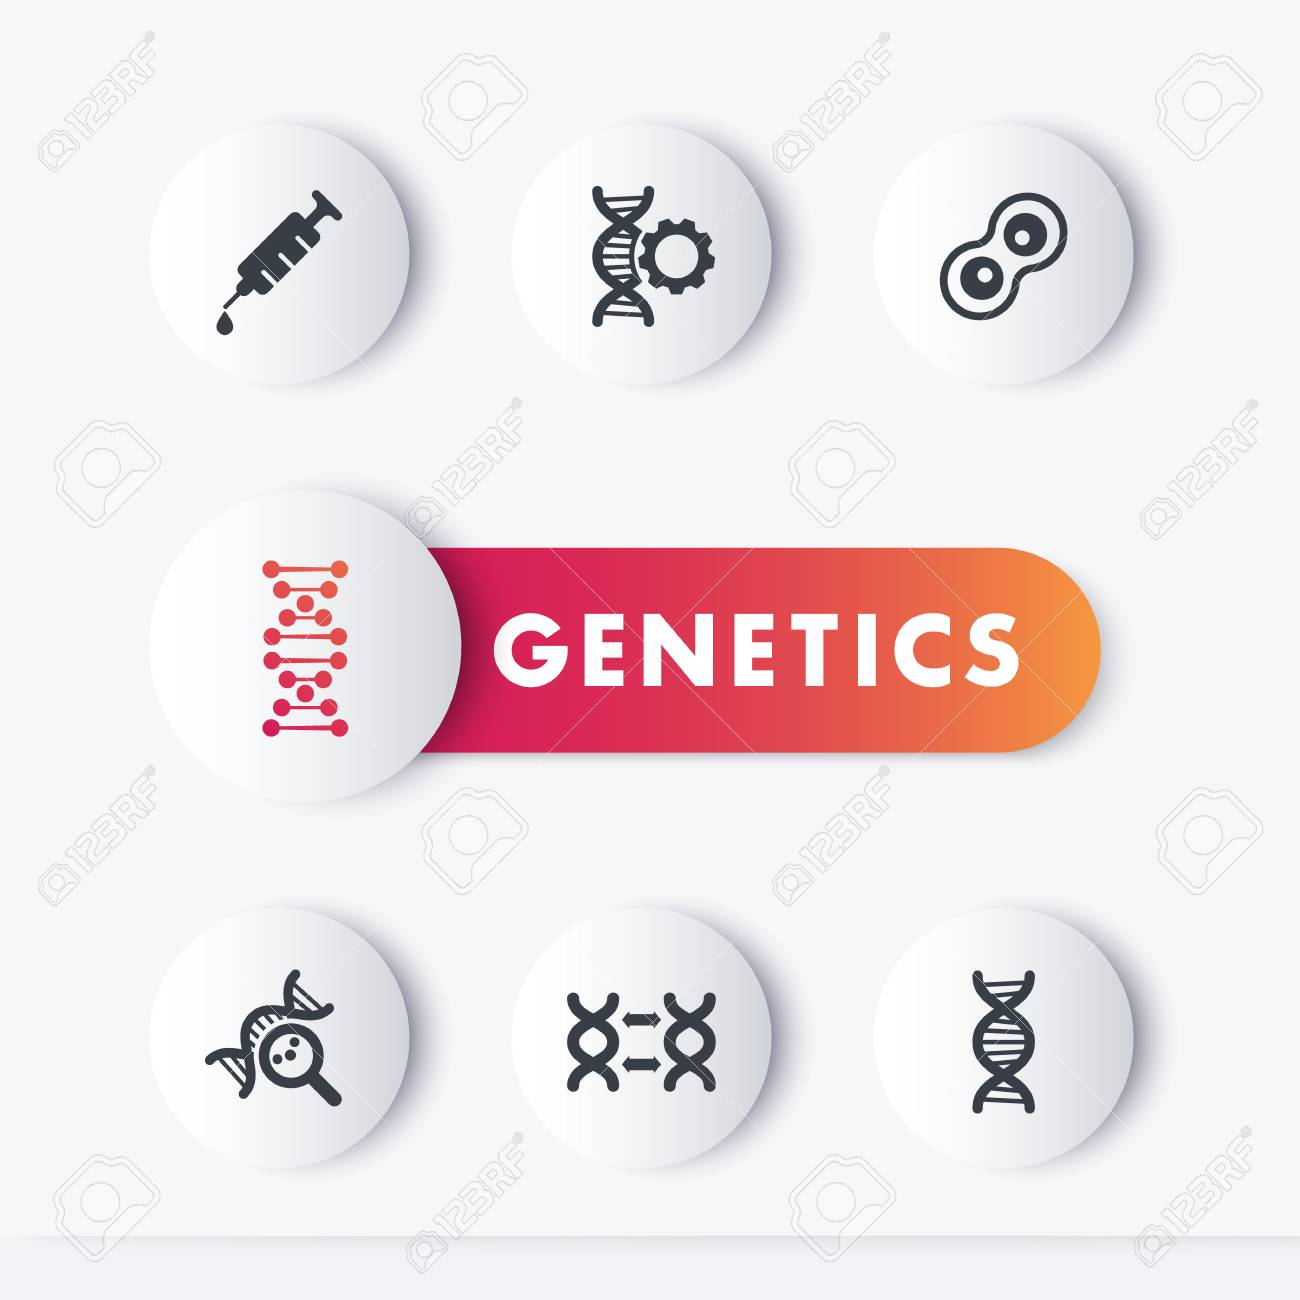 genetics icons set genetic modification research dna chains